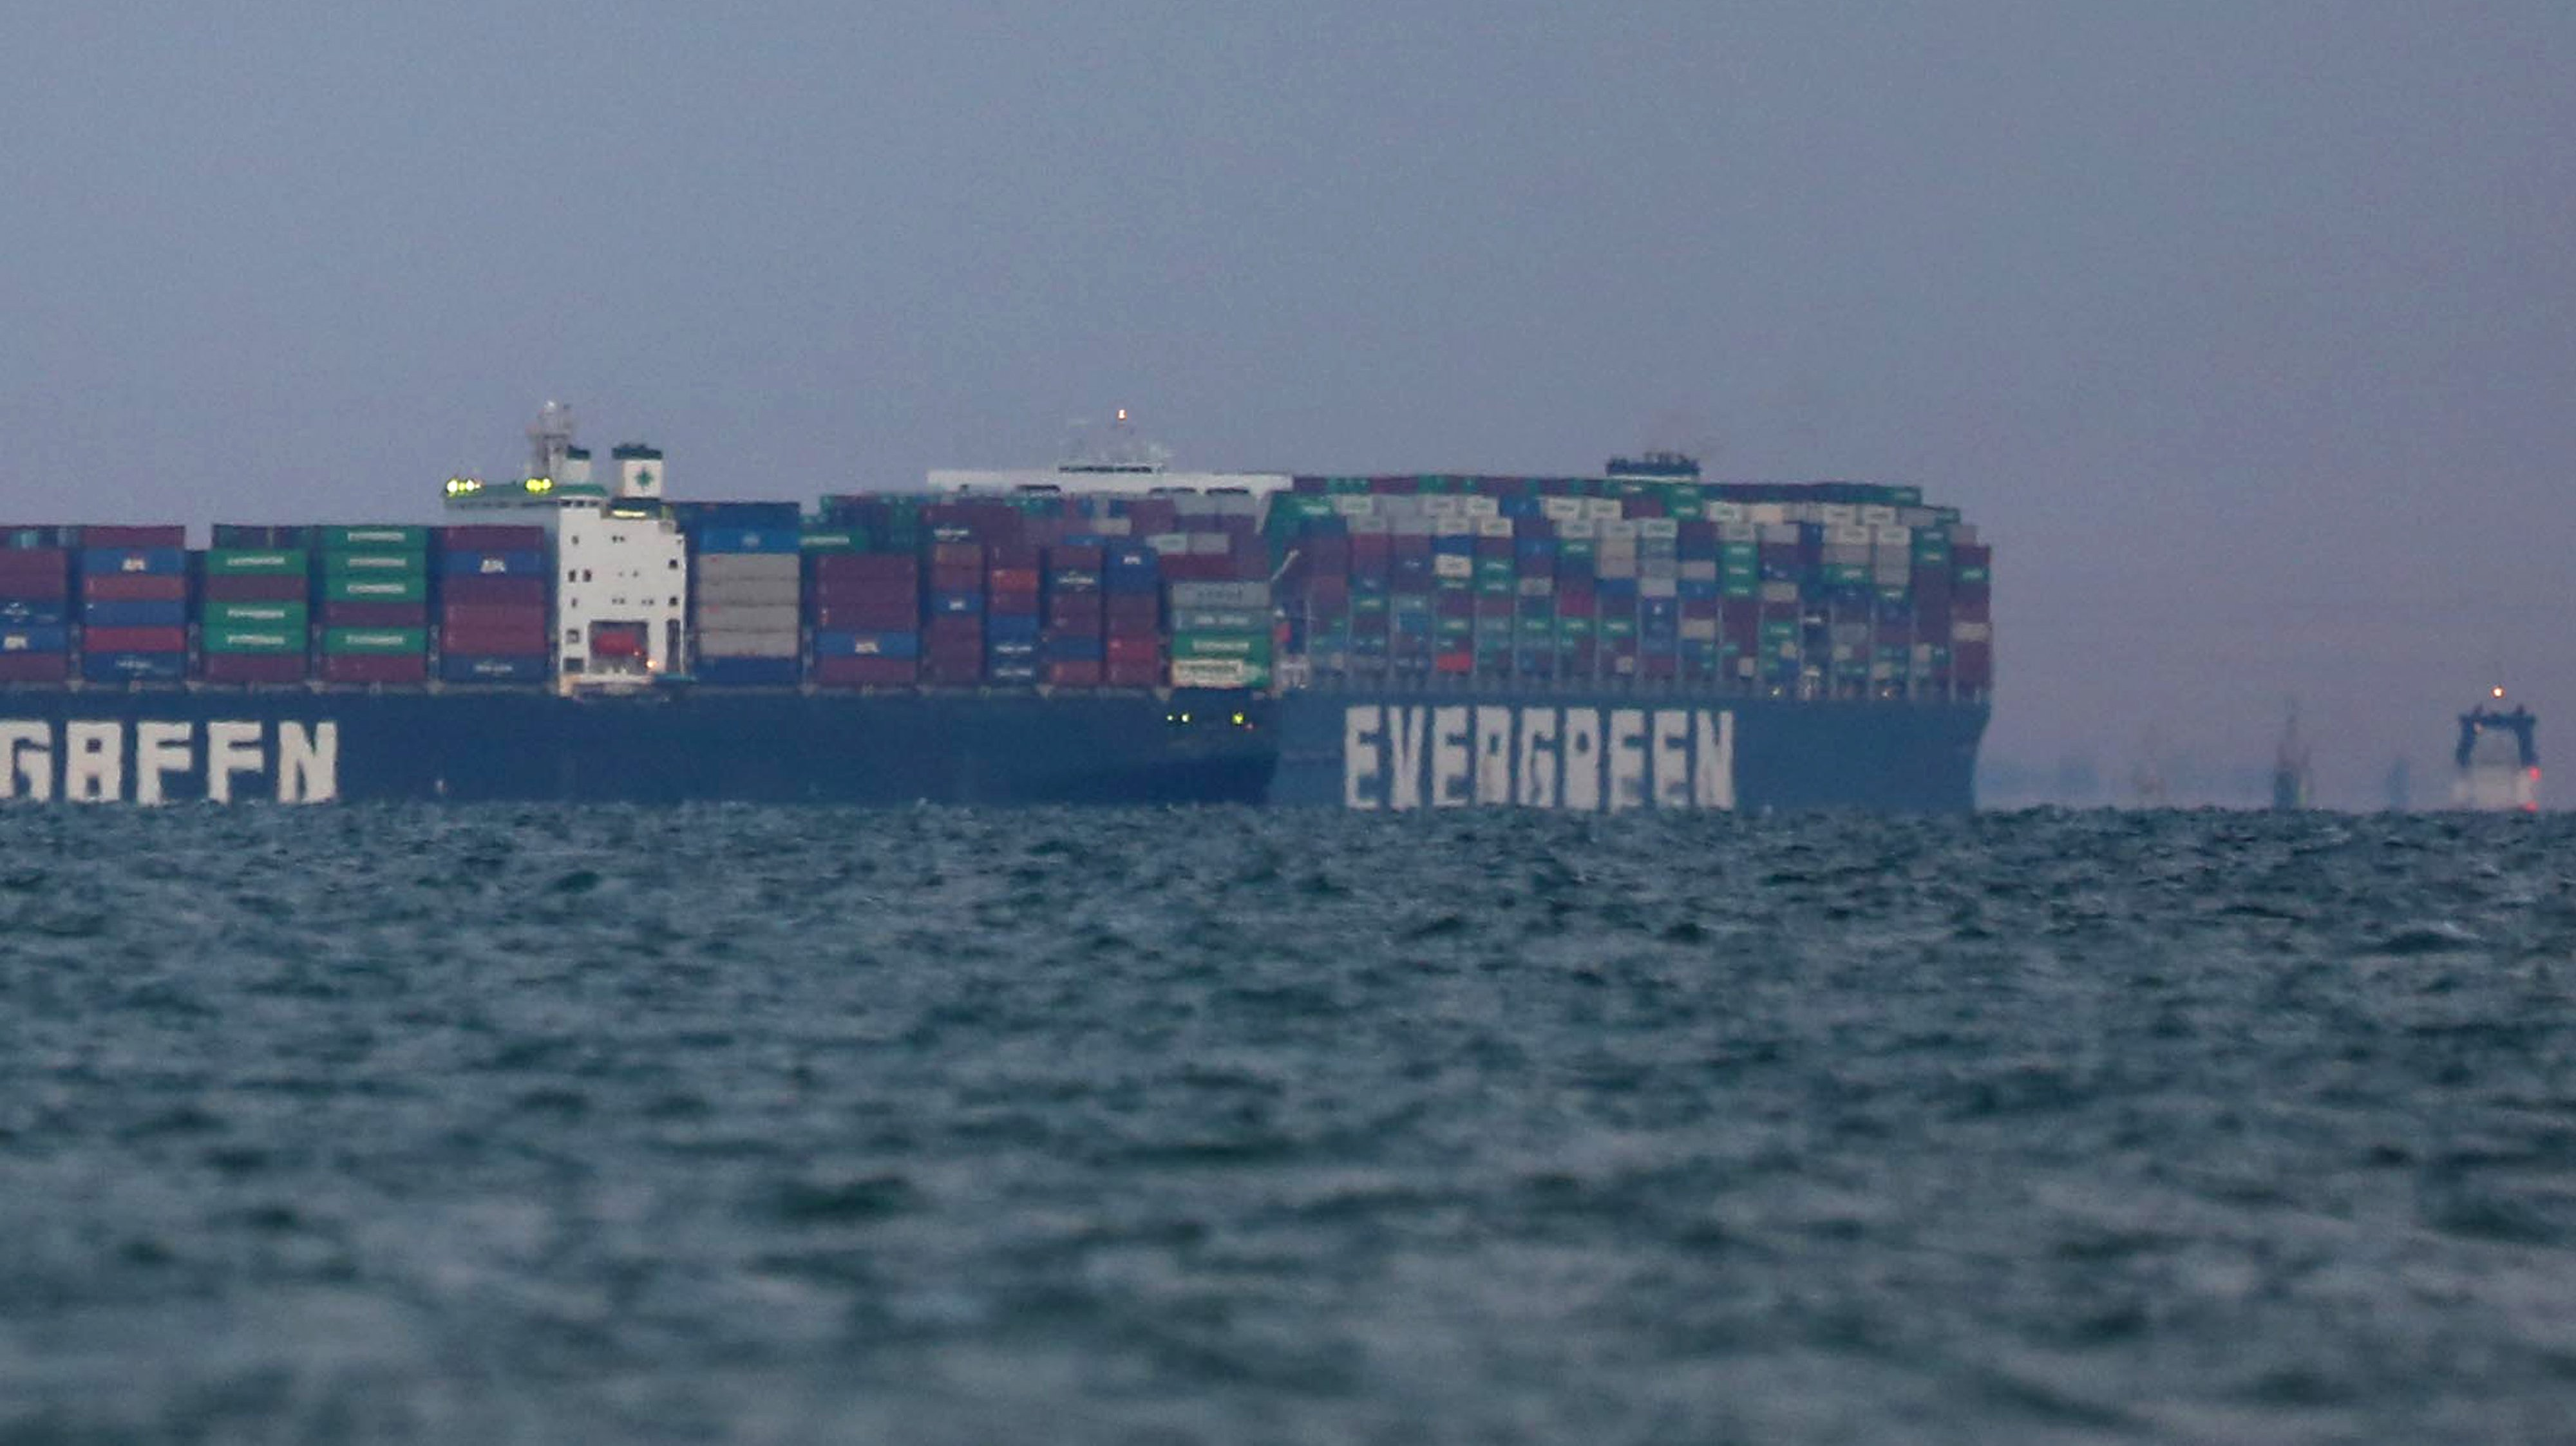 Suez Ship Is Refloated in First Step to Clearing Canal